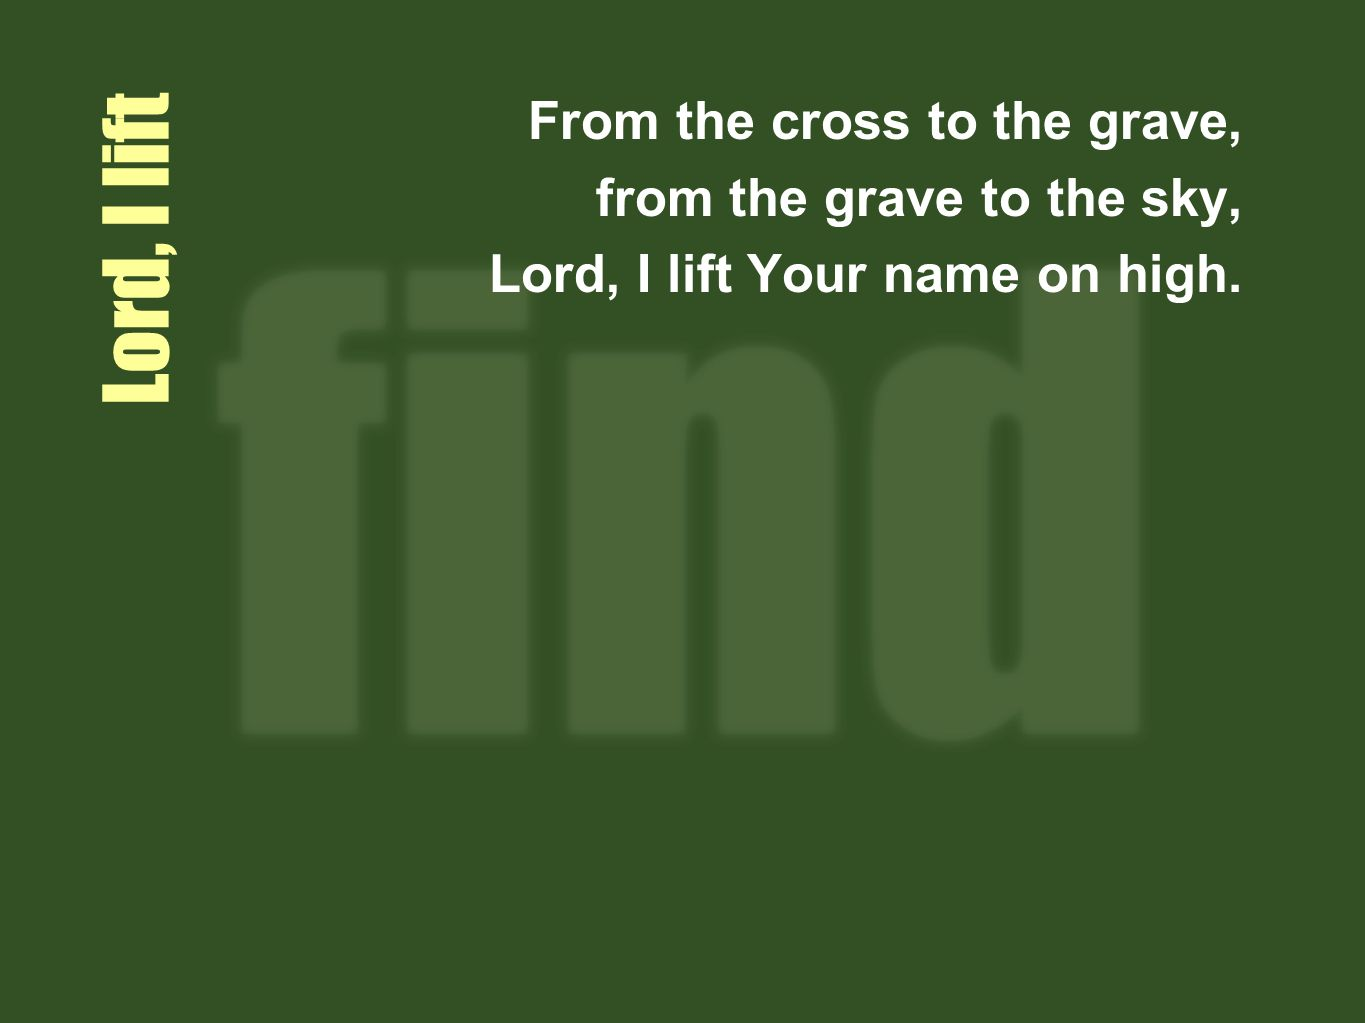 Lord, I lift From the cross to the grave, from the grave to the sky,